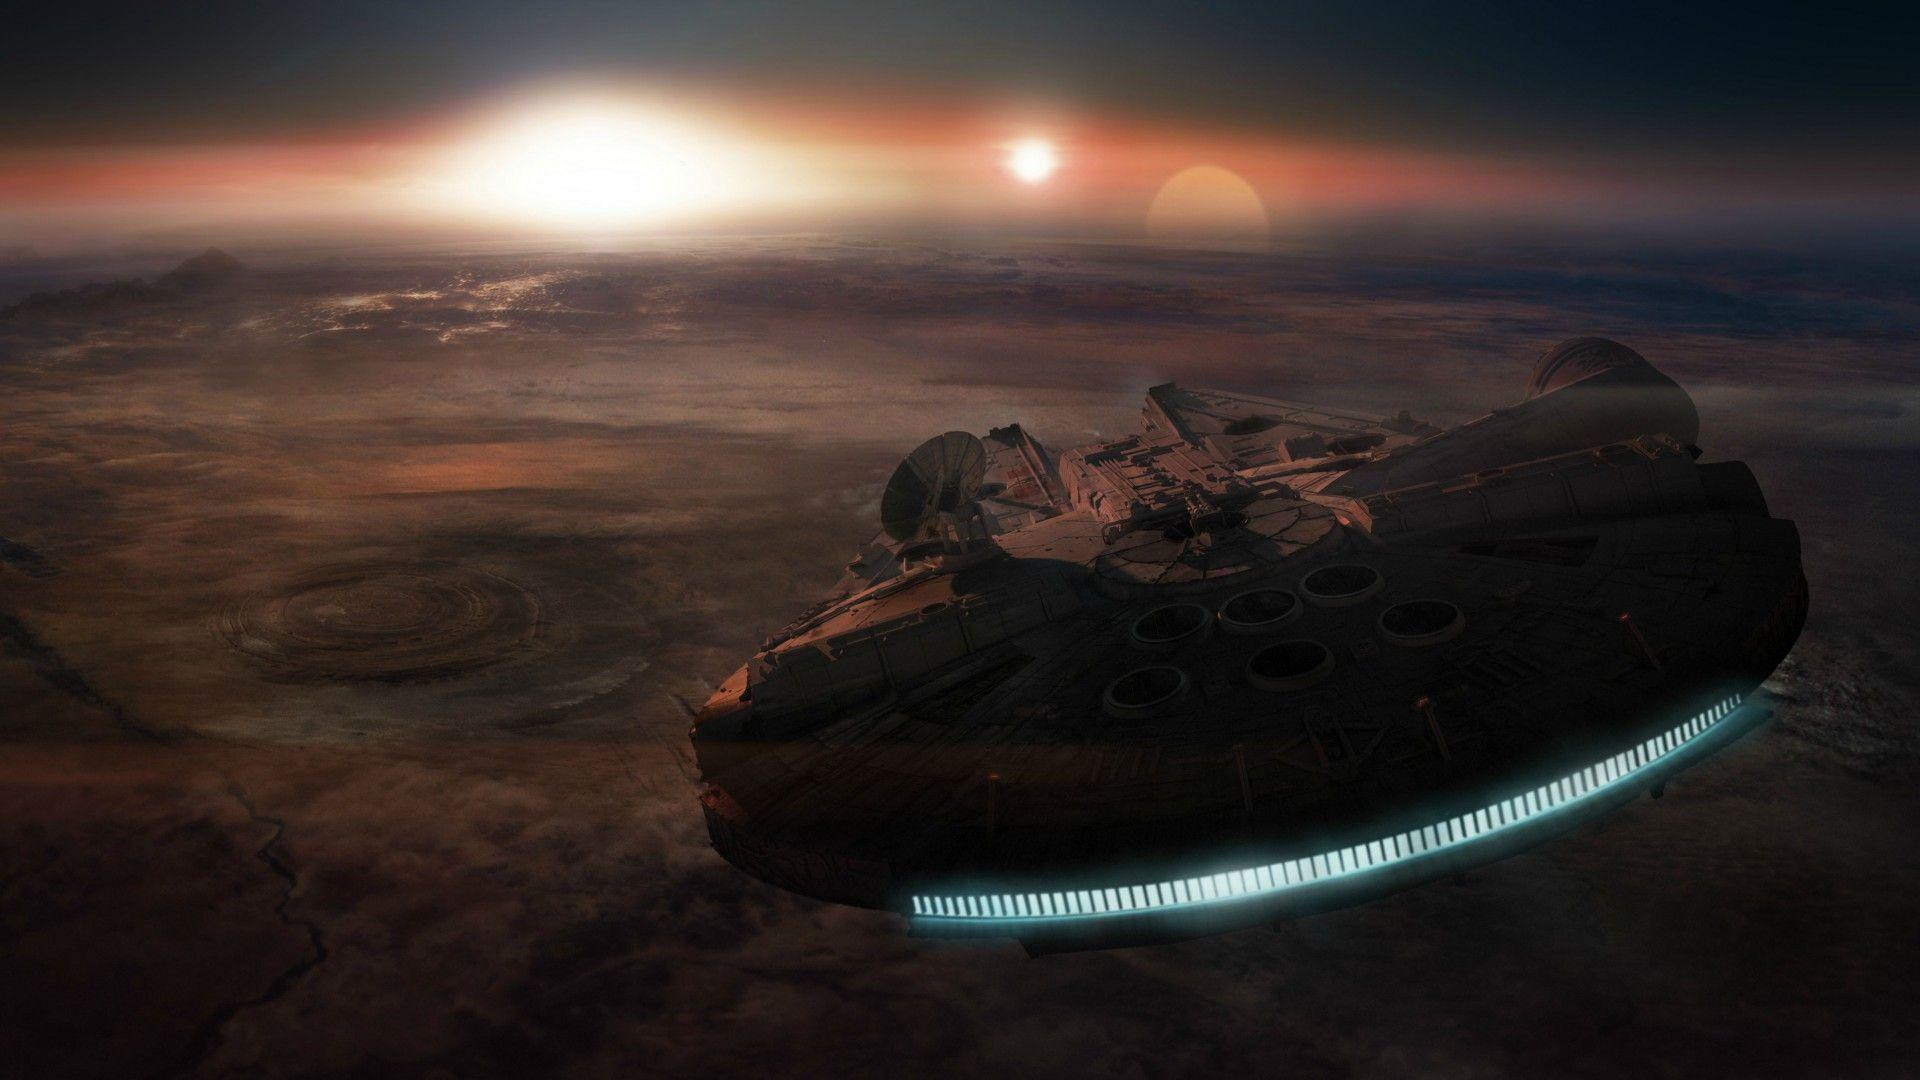 Star Wars The Force Awakens Wallpapers Wallpaper Cave